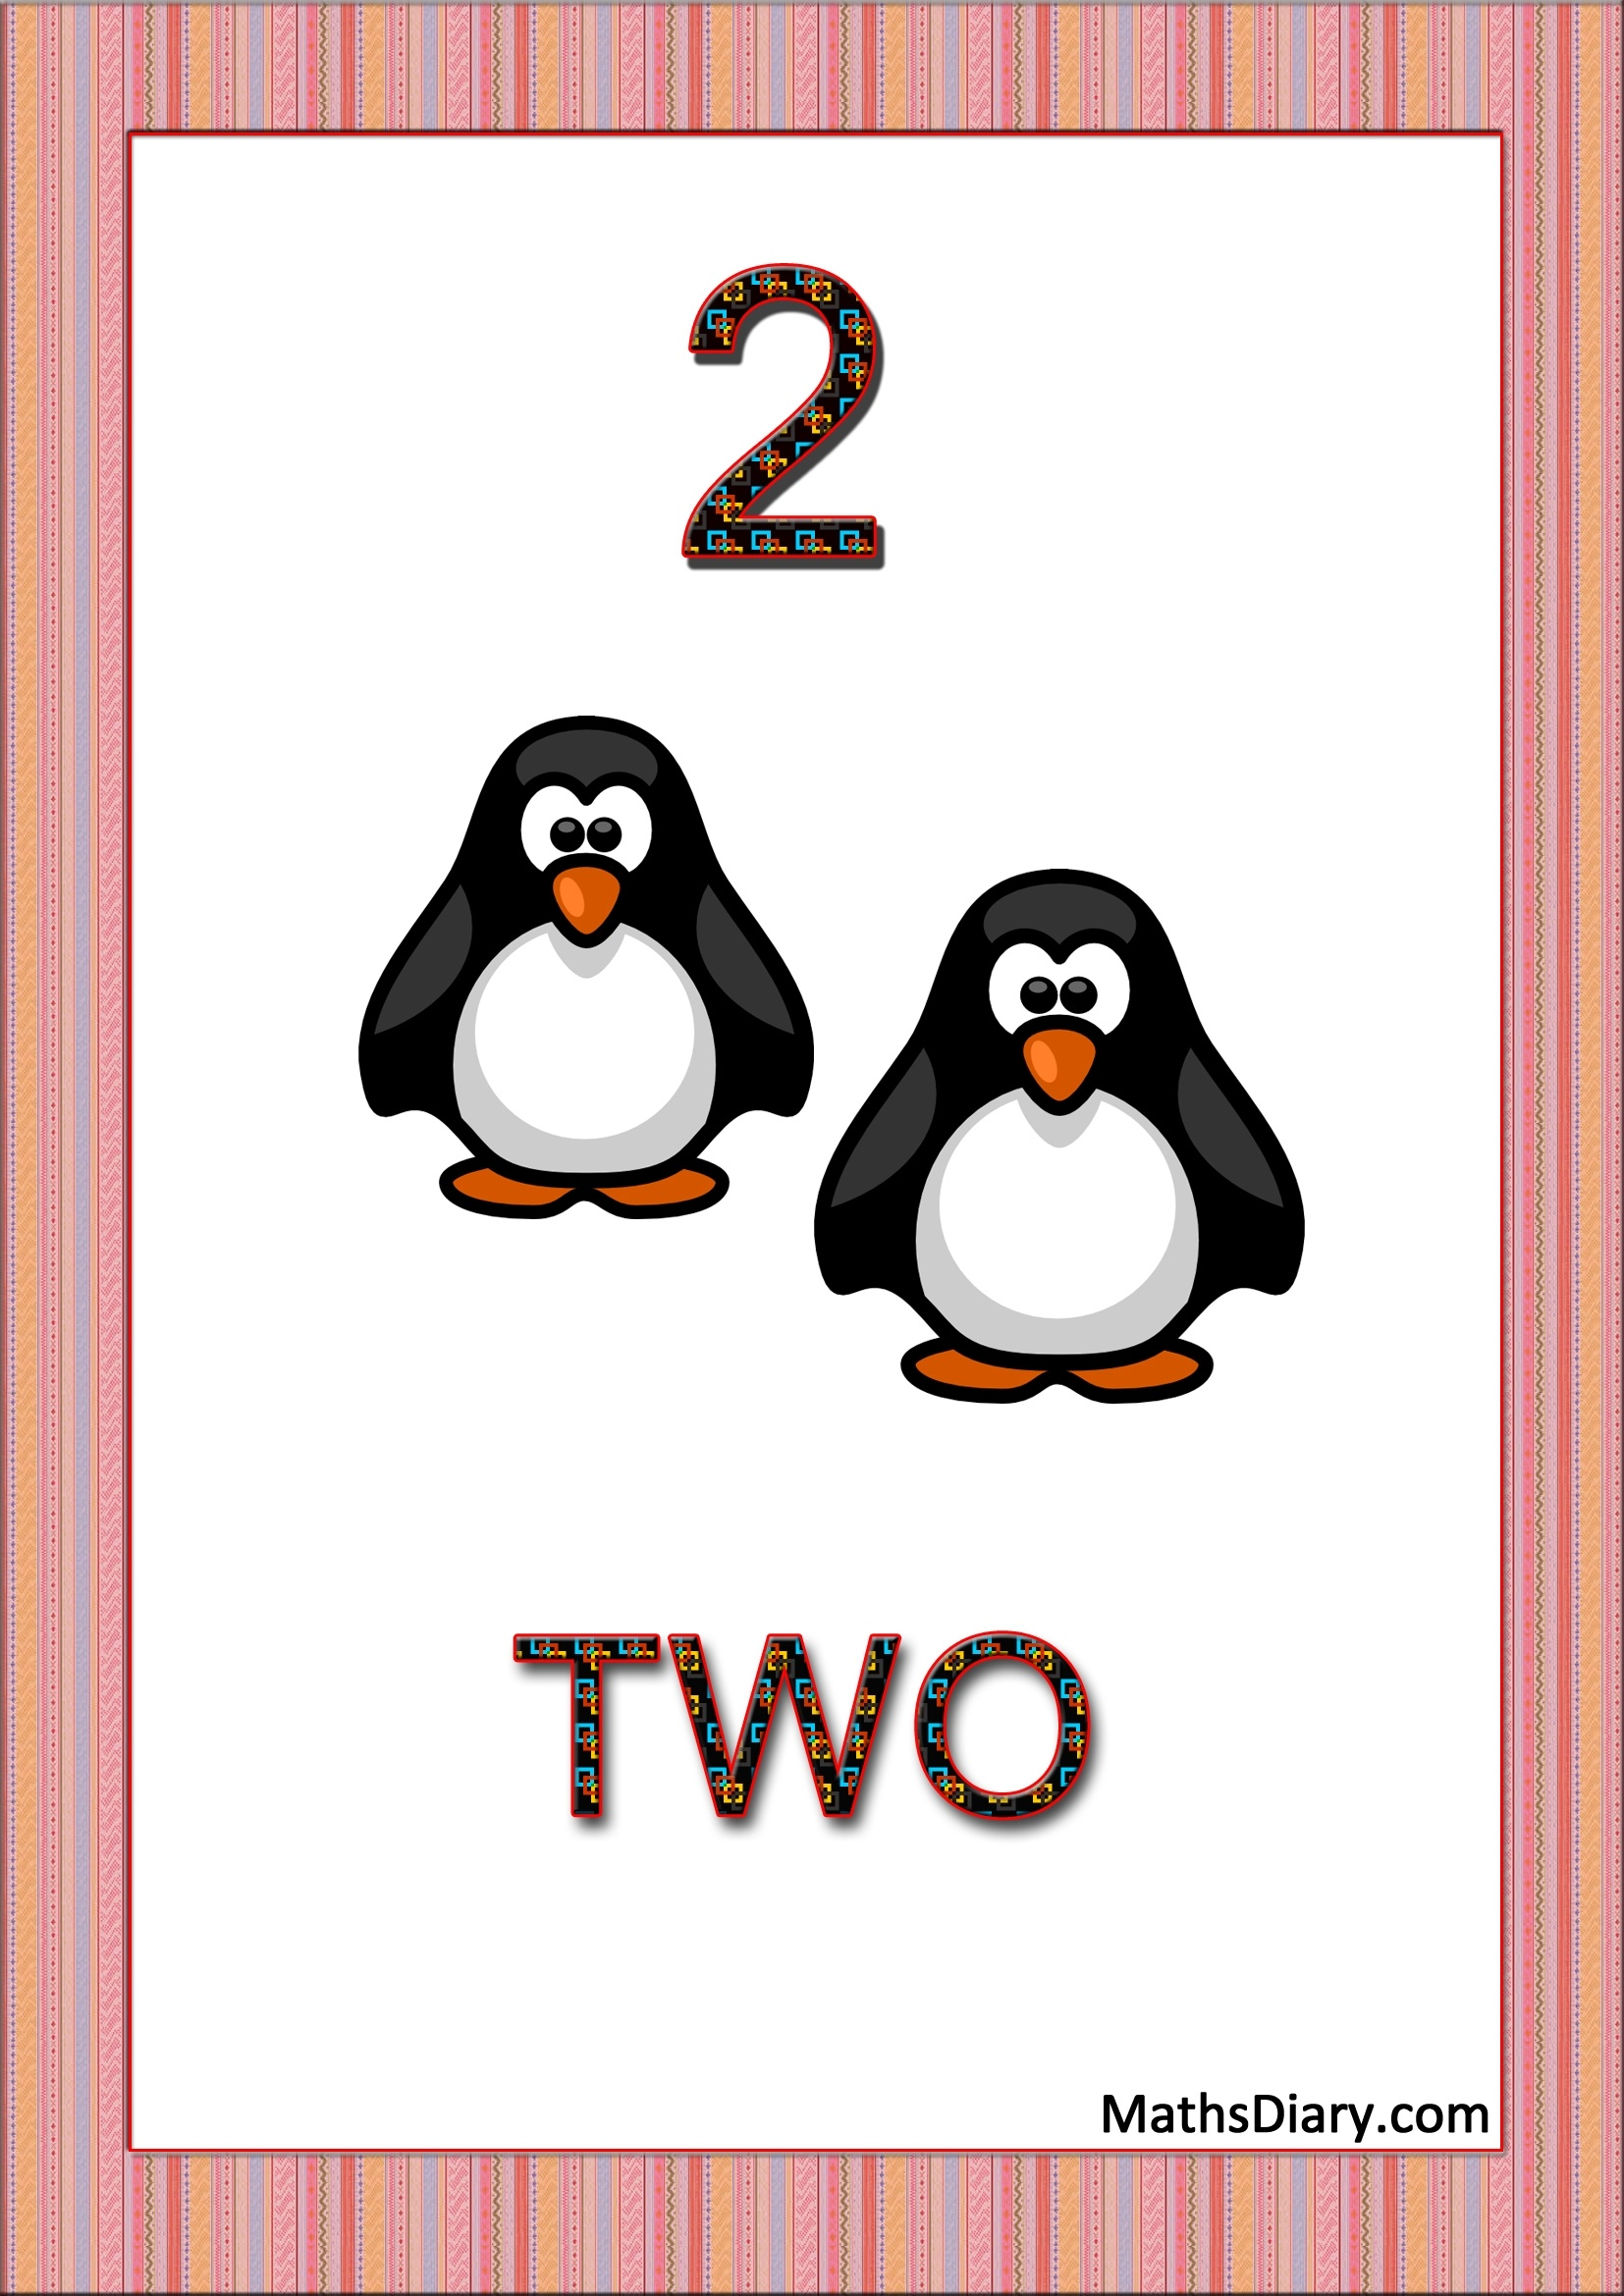 Learning Counting And Recognition Of Number 2 Worksheets Level 1 Help Sheets Part 3